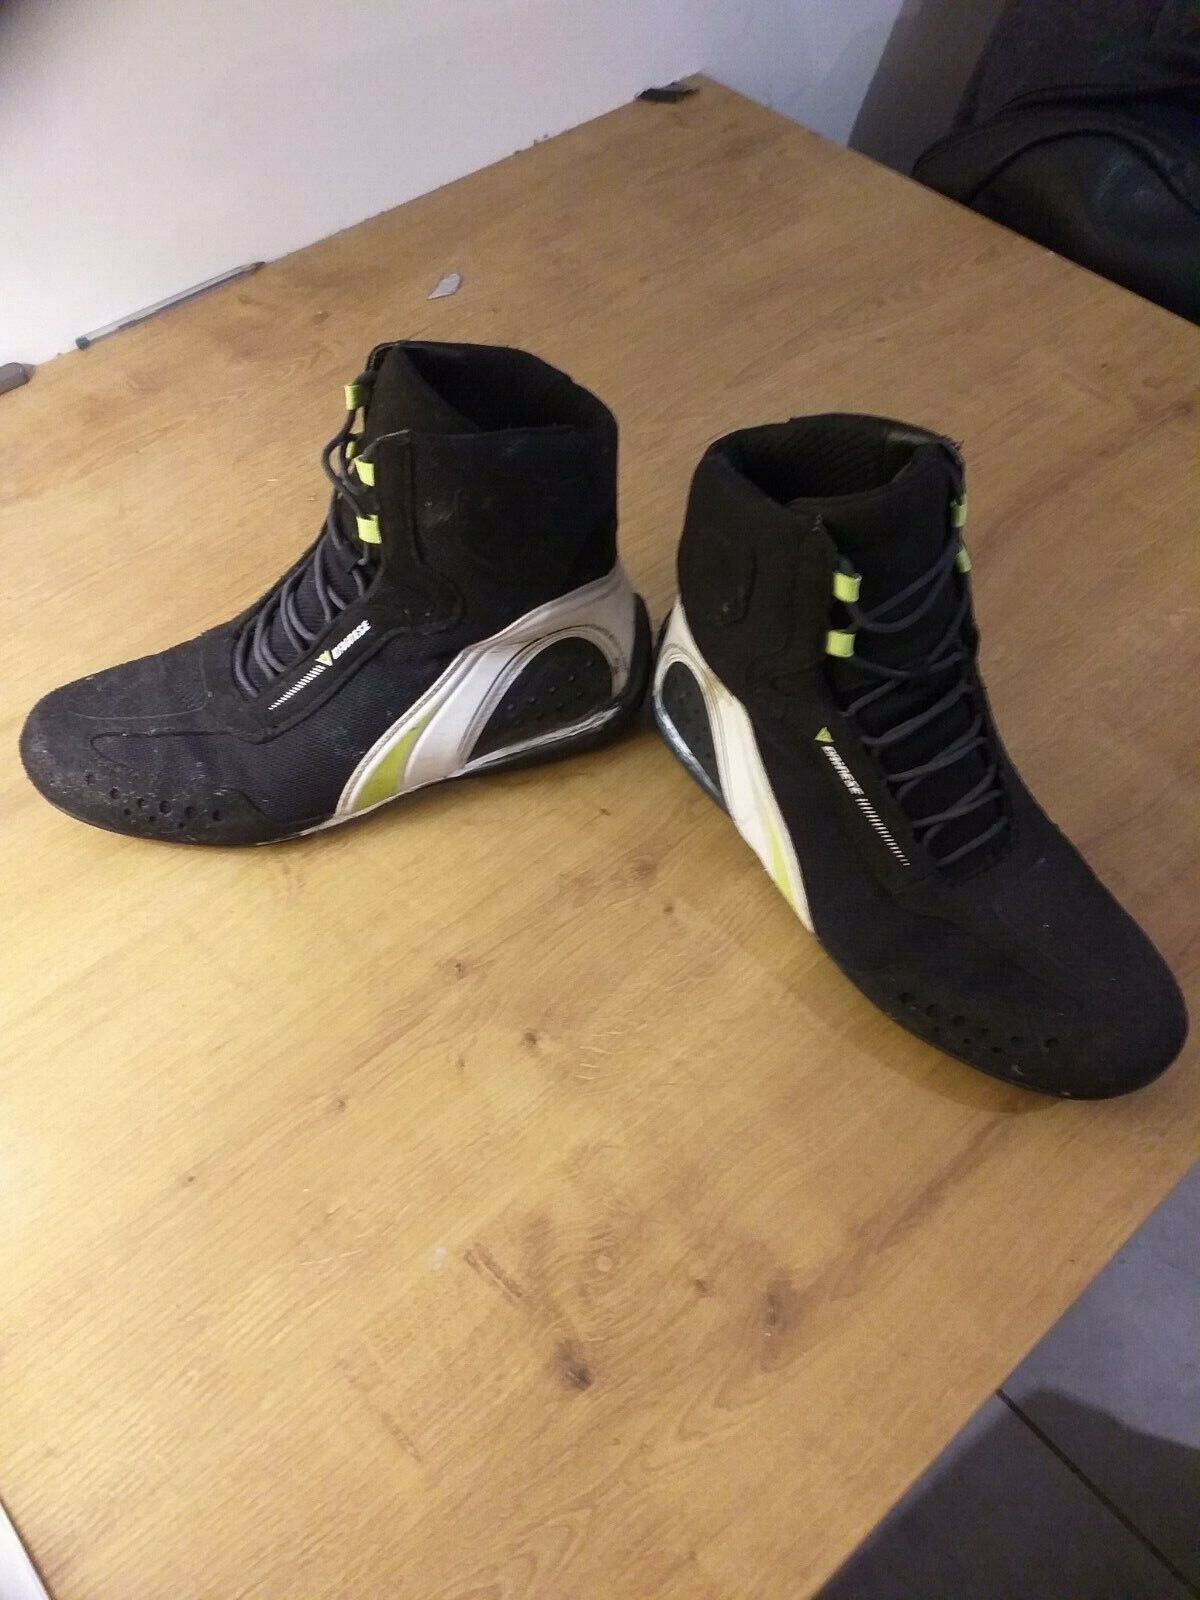 Bottes moto dainese 2 paires+ sac bagster 30l